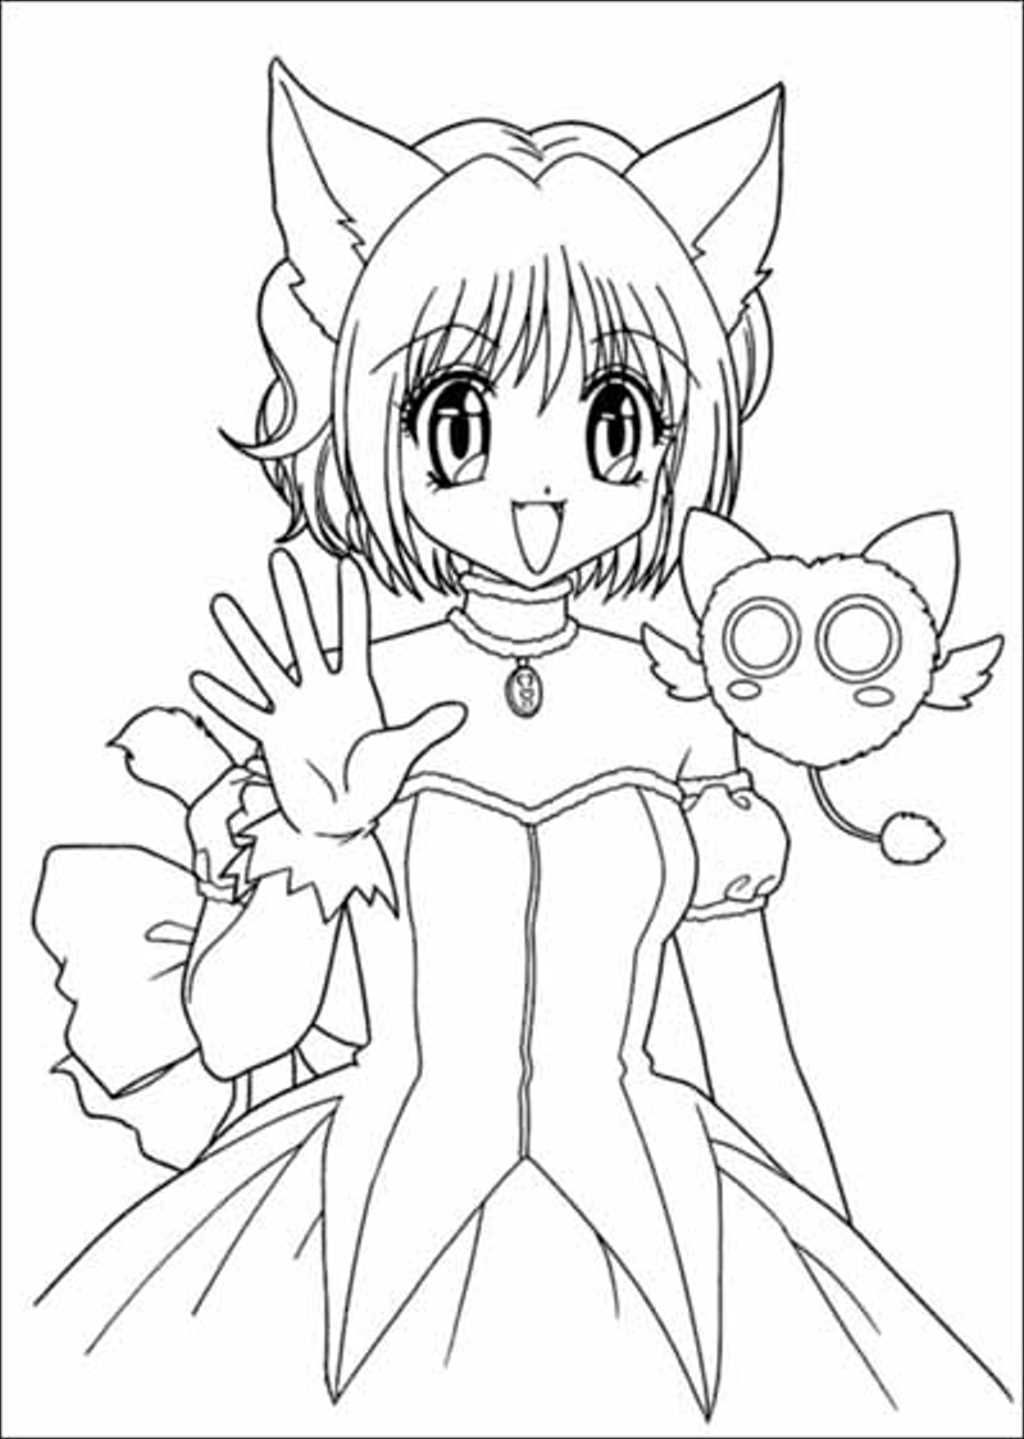 Mew Mew Ichigo Greets His Friends | Mew Mew Coloring Pages ...